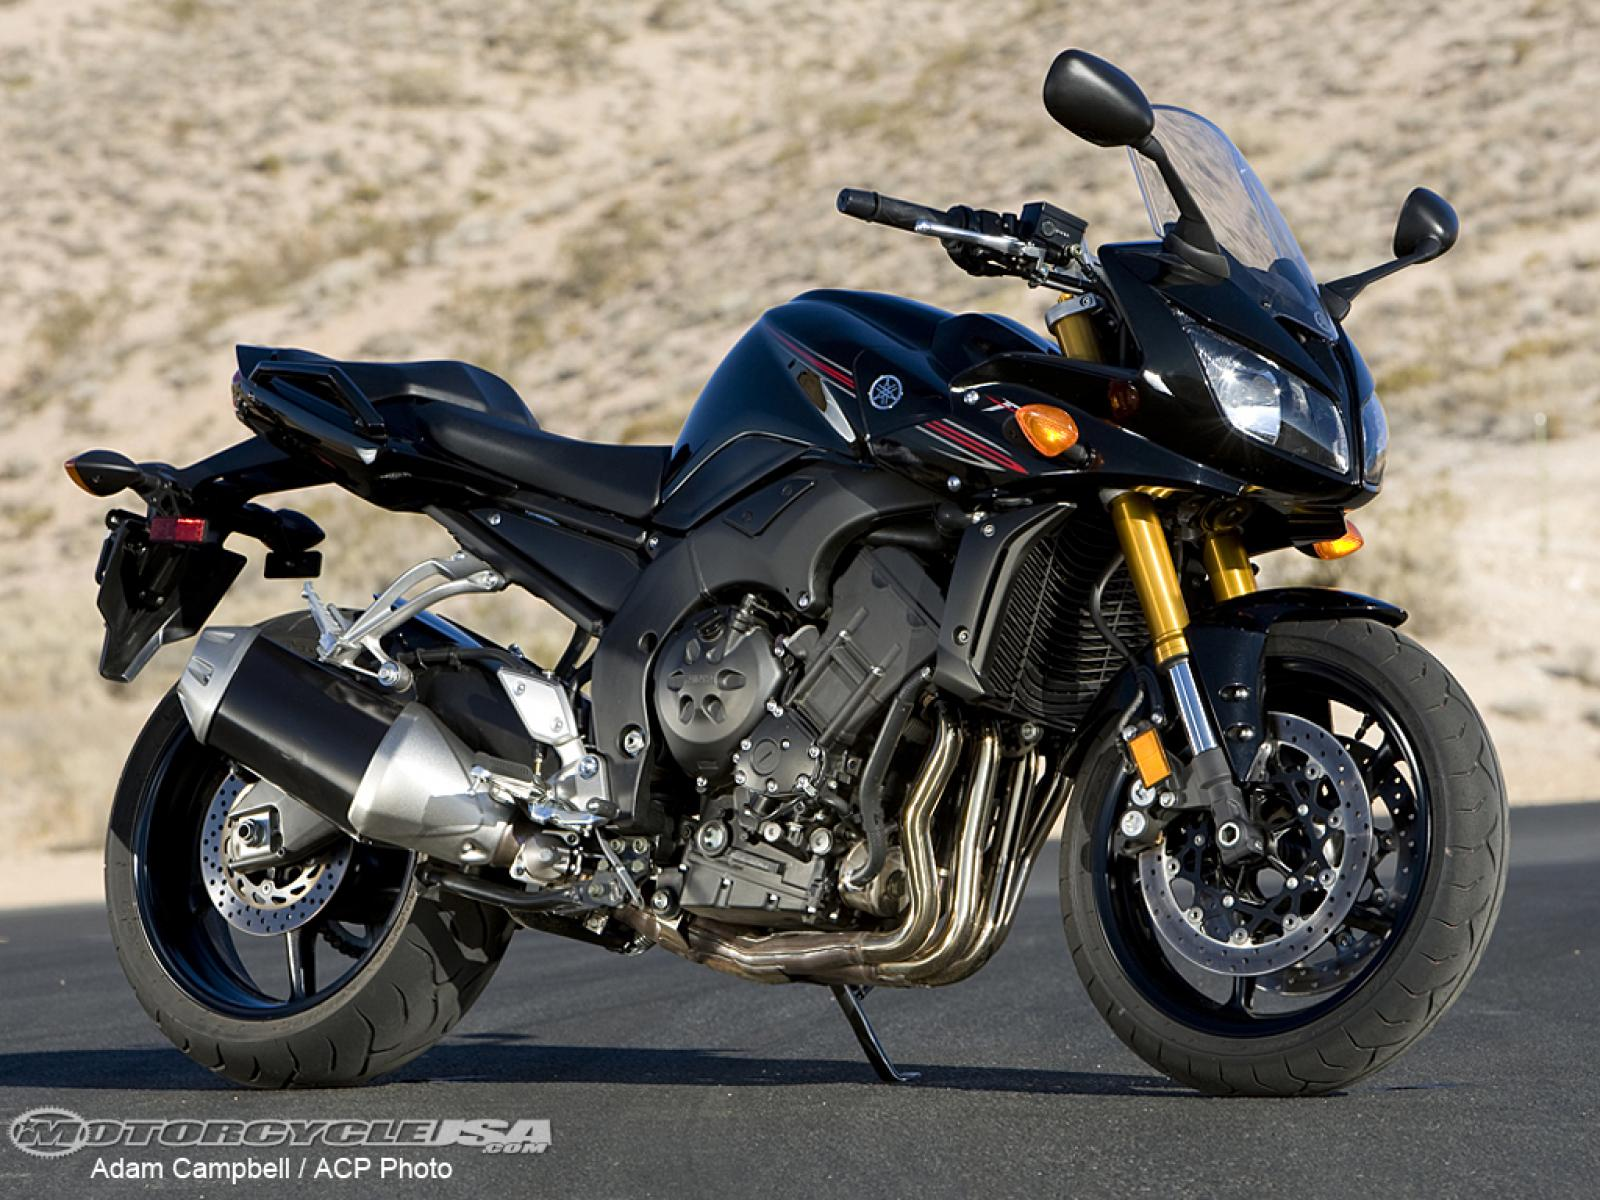 Yamaha Fz Full Fairing